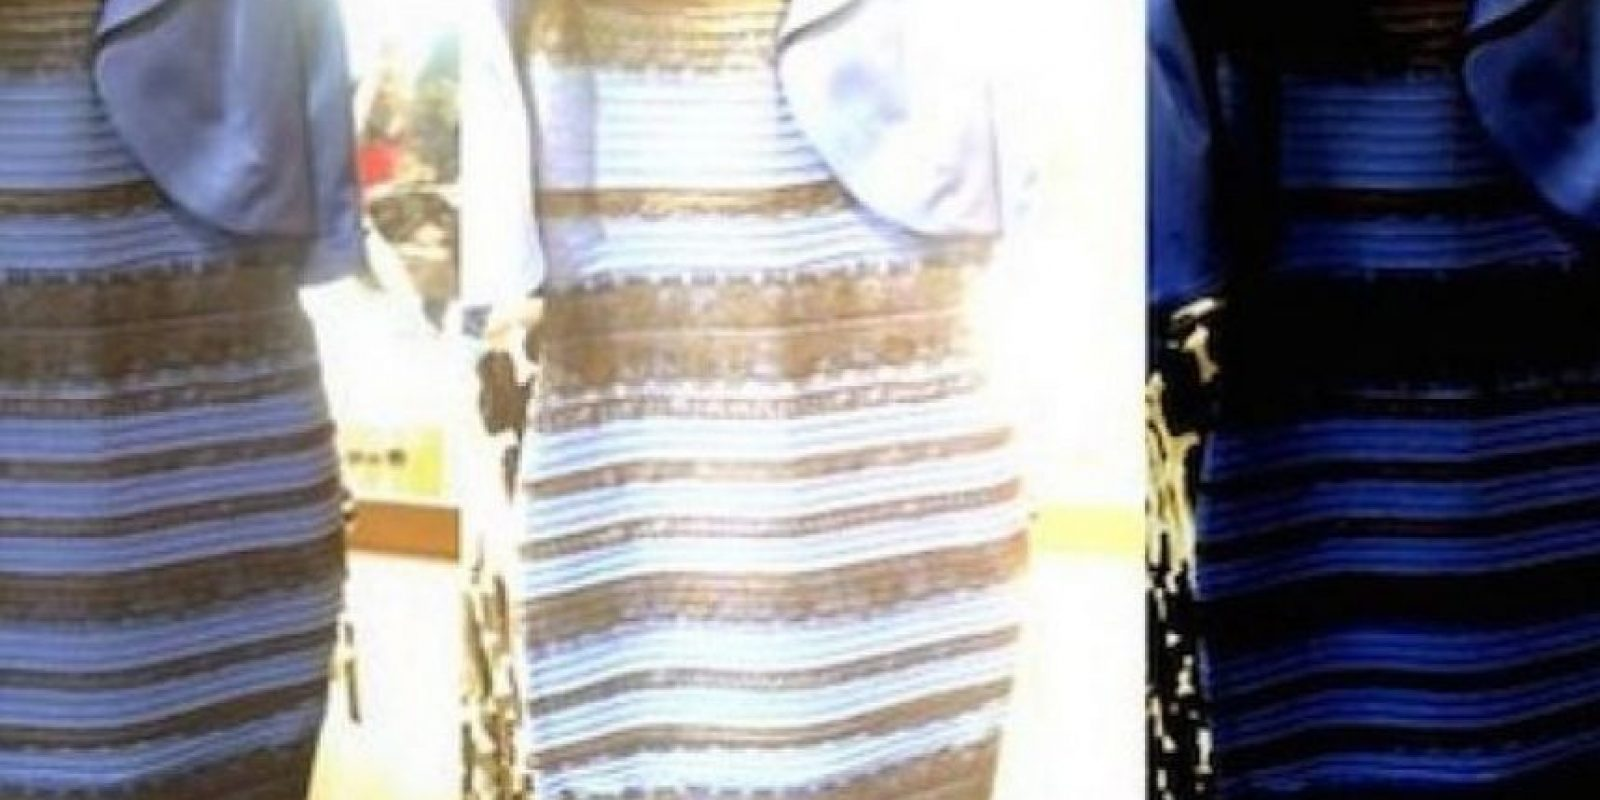 #TheDress Foto: Vía Tumblr